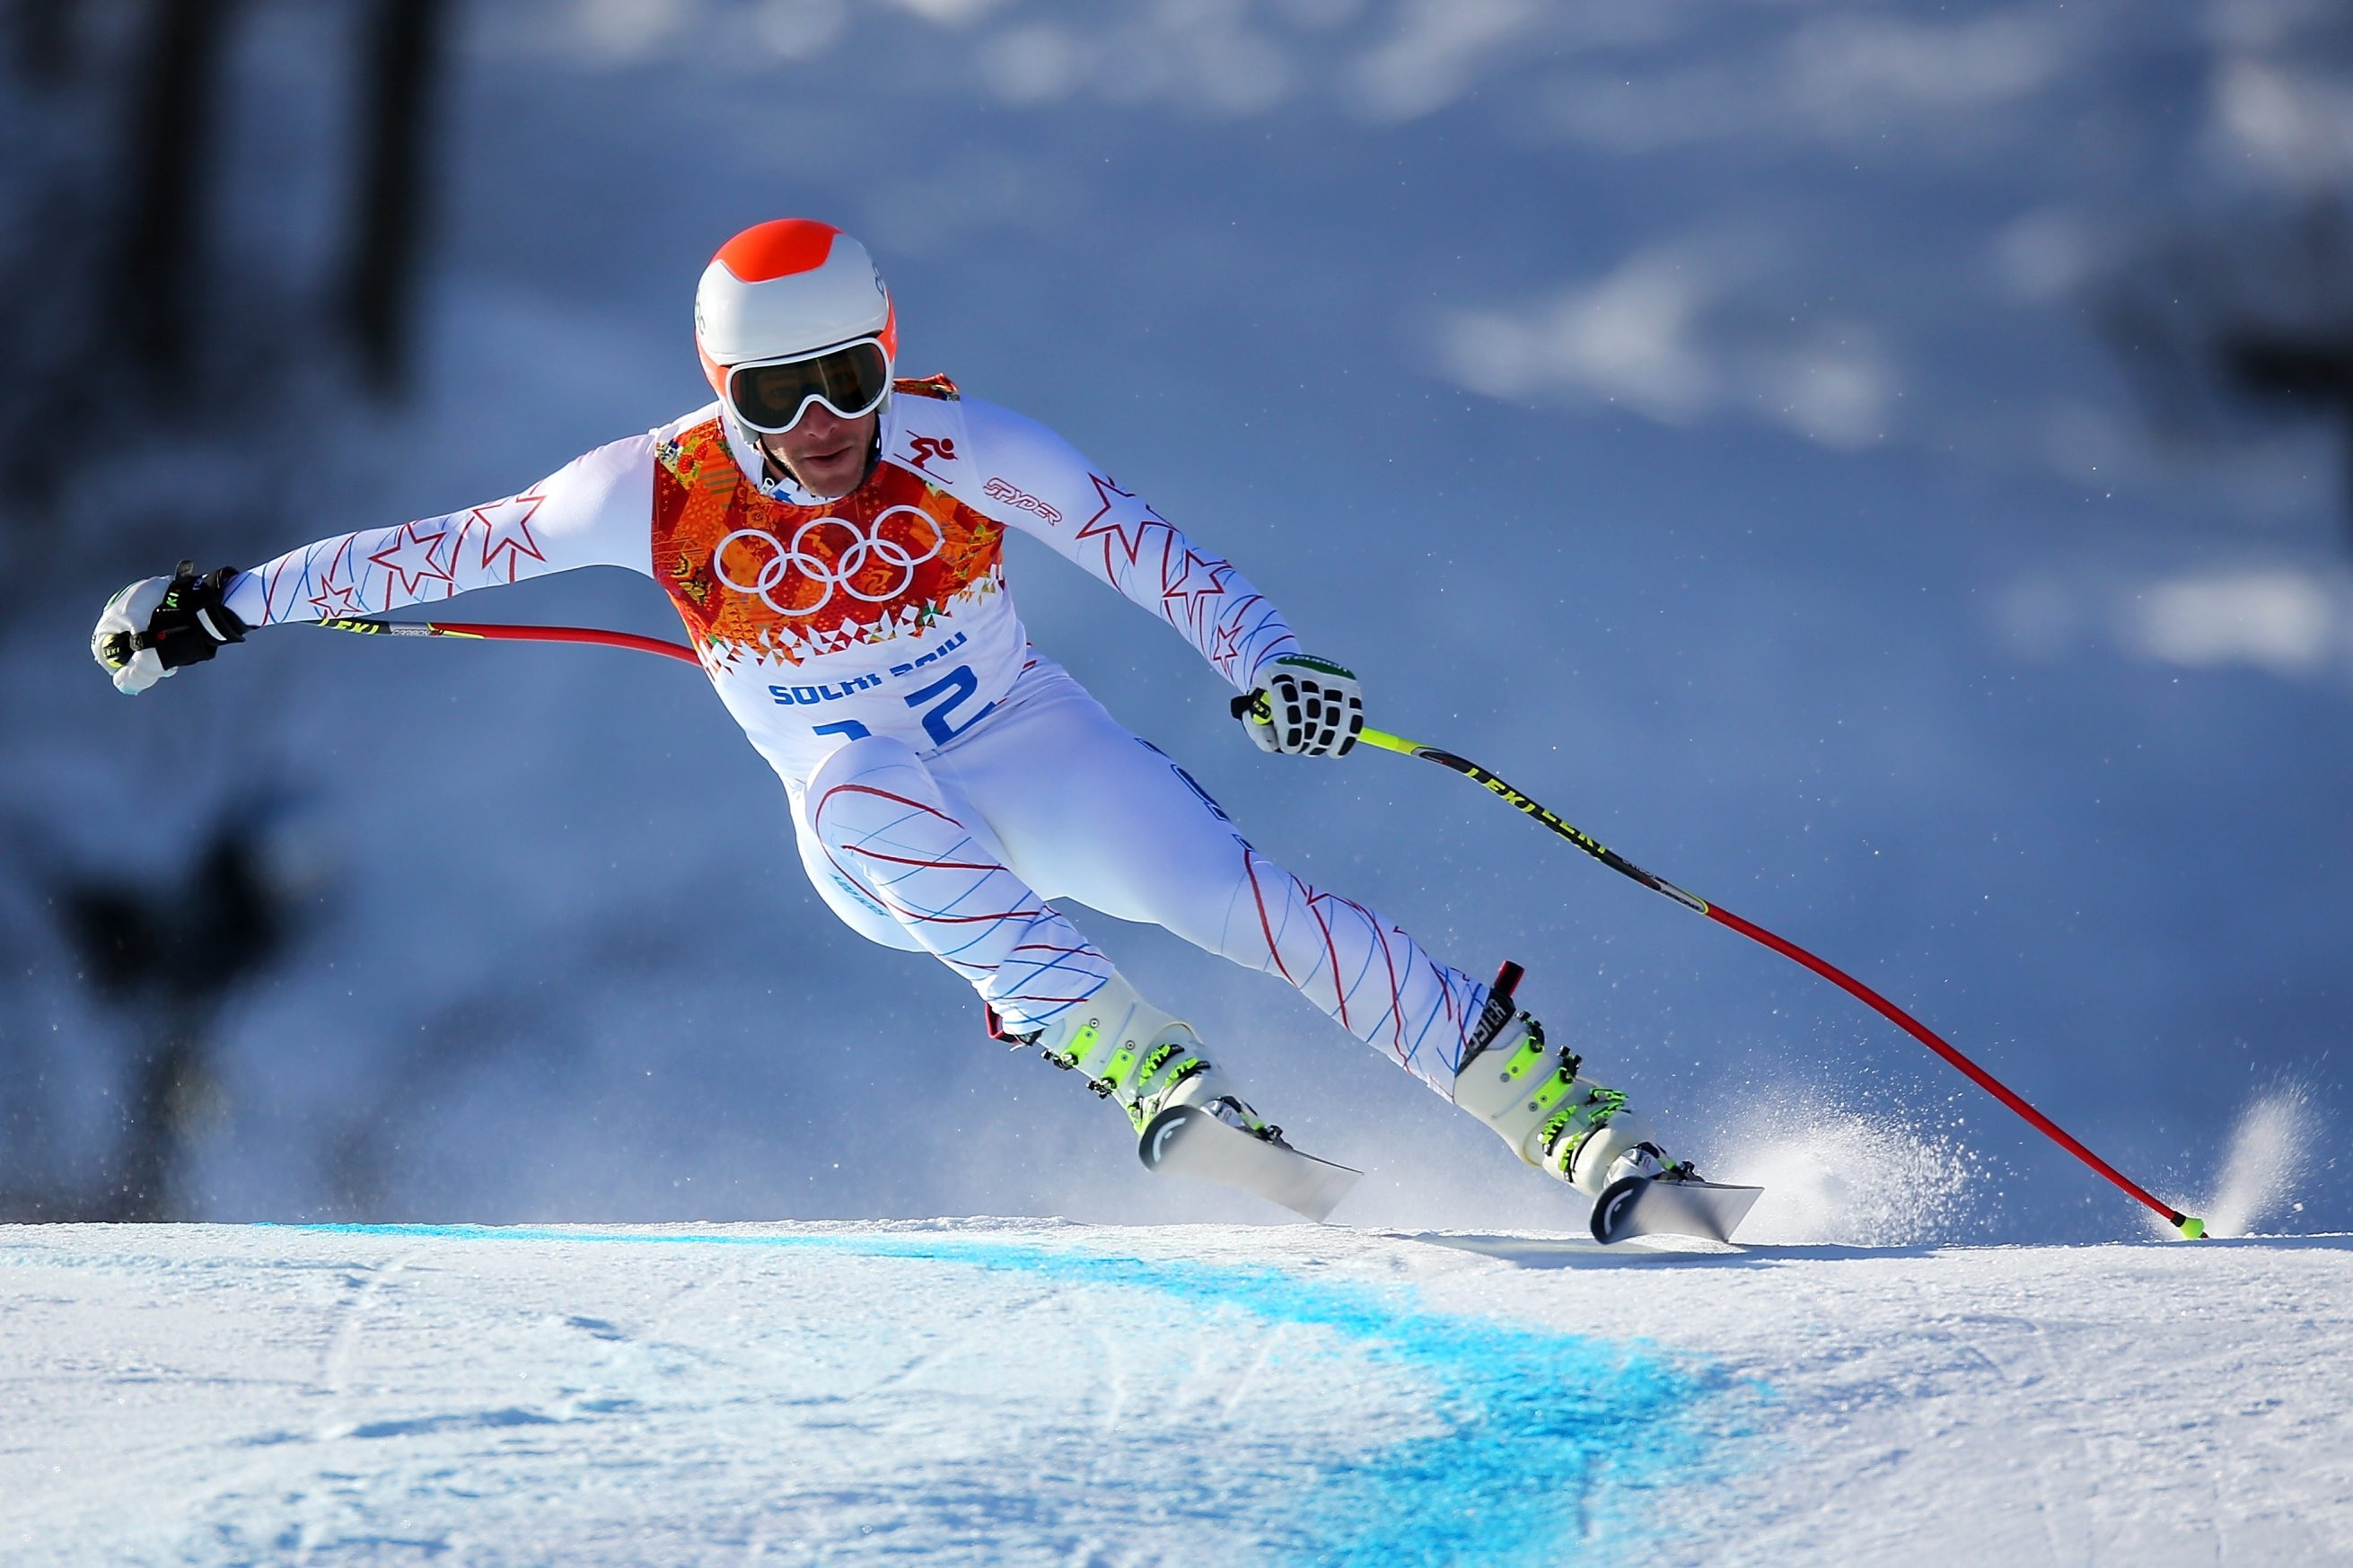 Bode Miller, the 36-year-old former bad boy of Alpine skiing, will try to become the oldest man in history to win an Olympic gold medal in his sport.